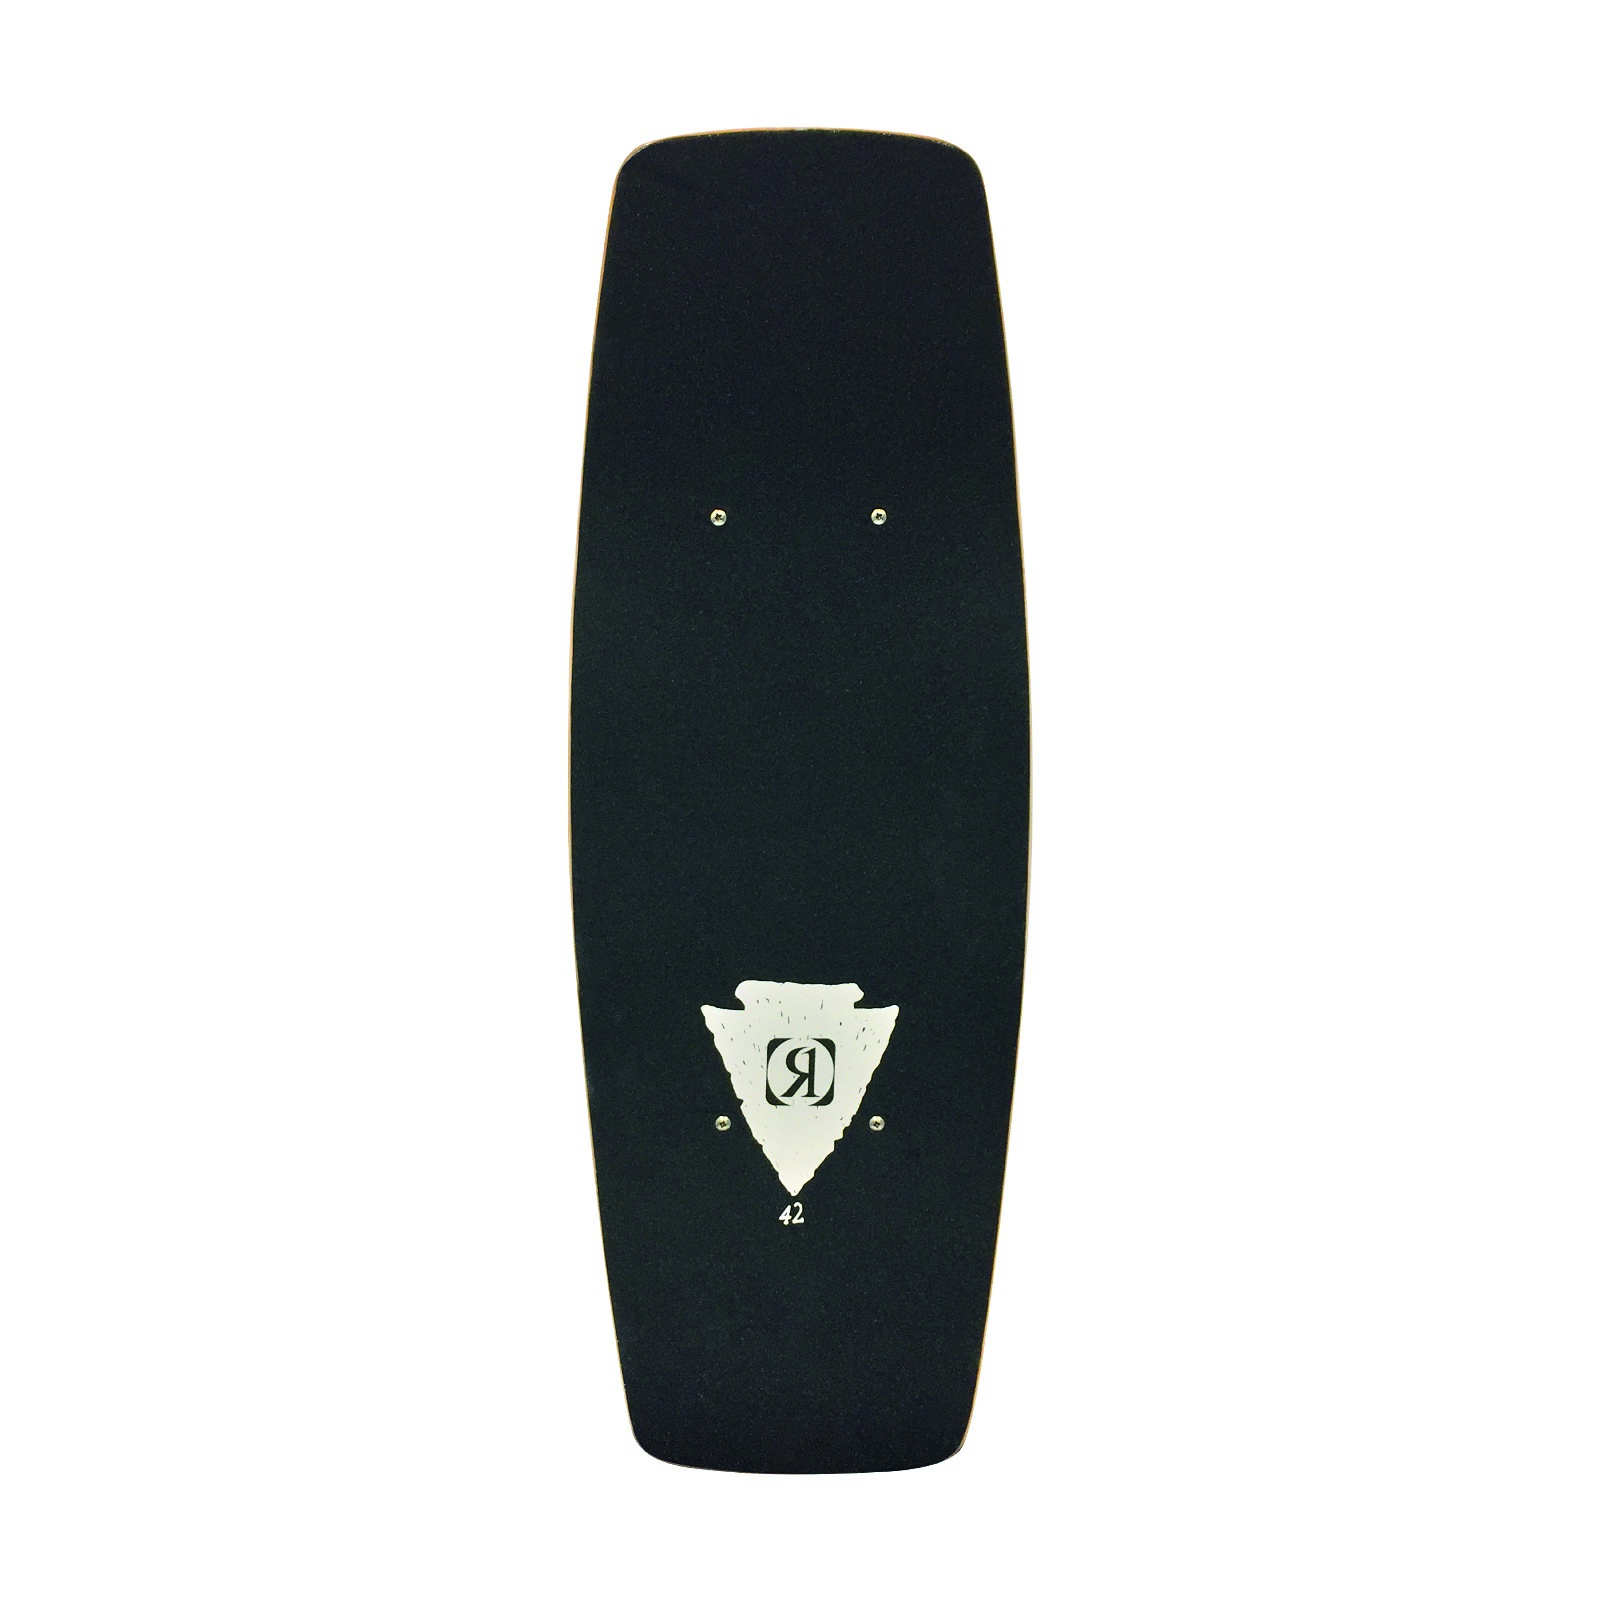 BOOMSTICK BI LEVEL SINTERED WAKESKATE RONIX 2019